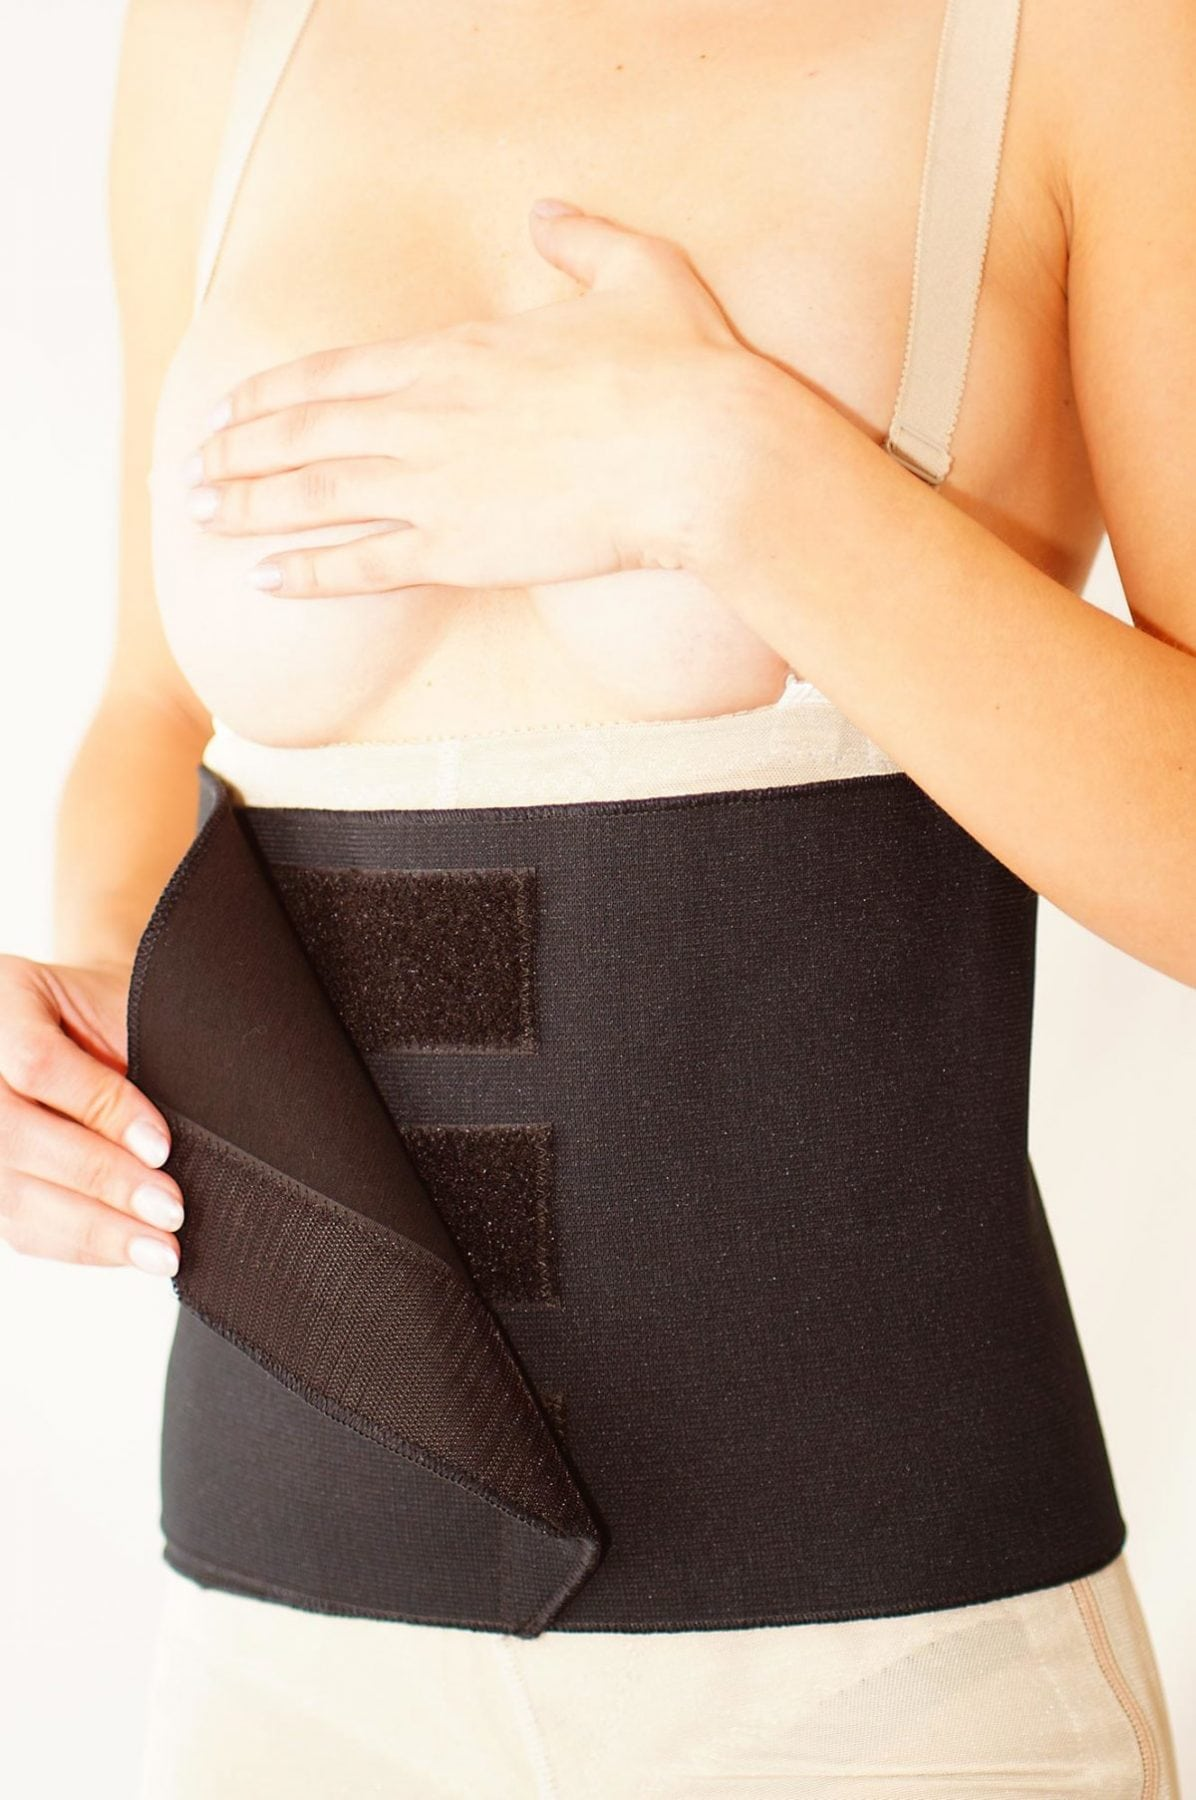 Feel the Support with our exclusive Black Abdominal Compression Binder.